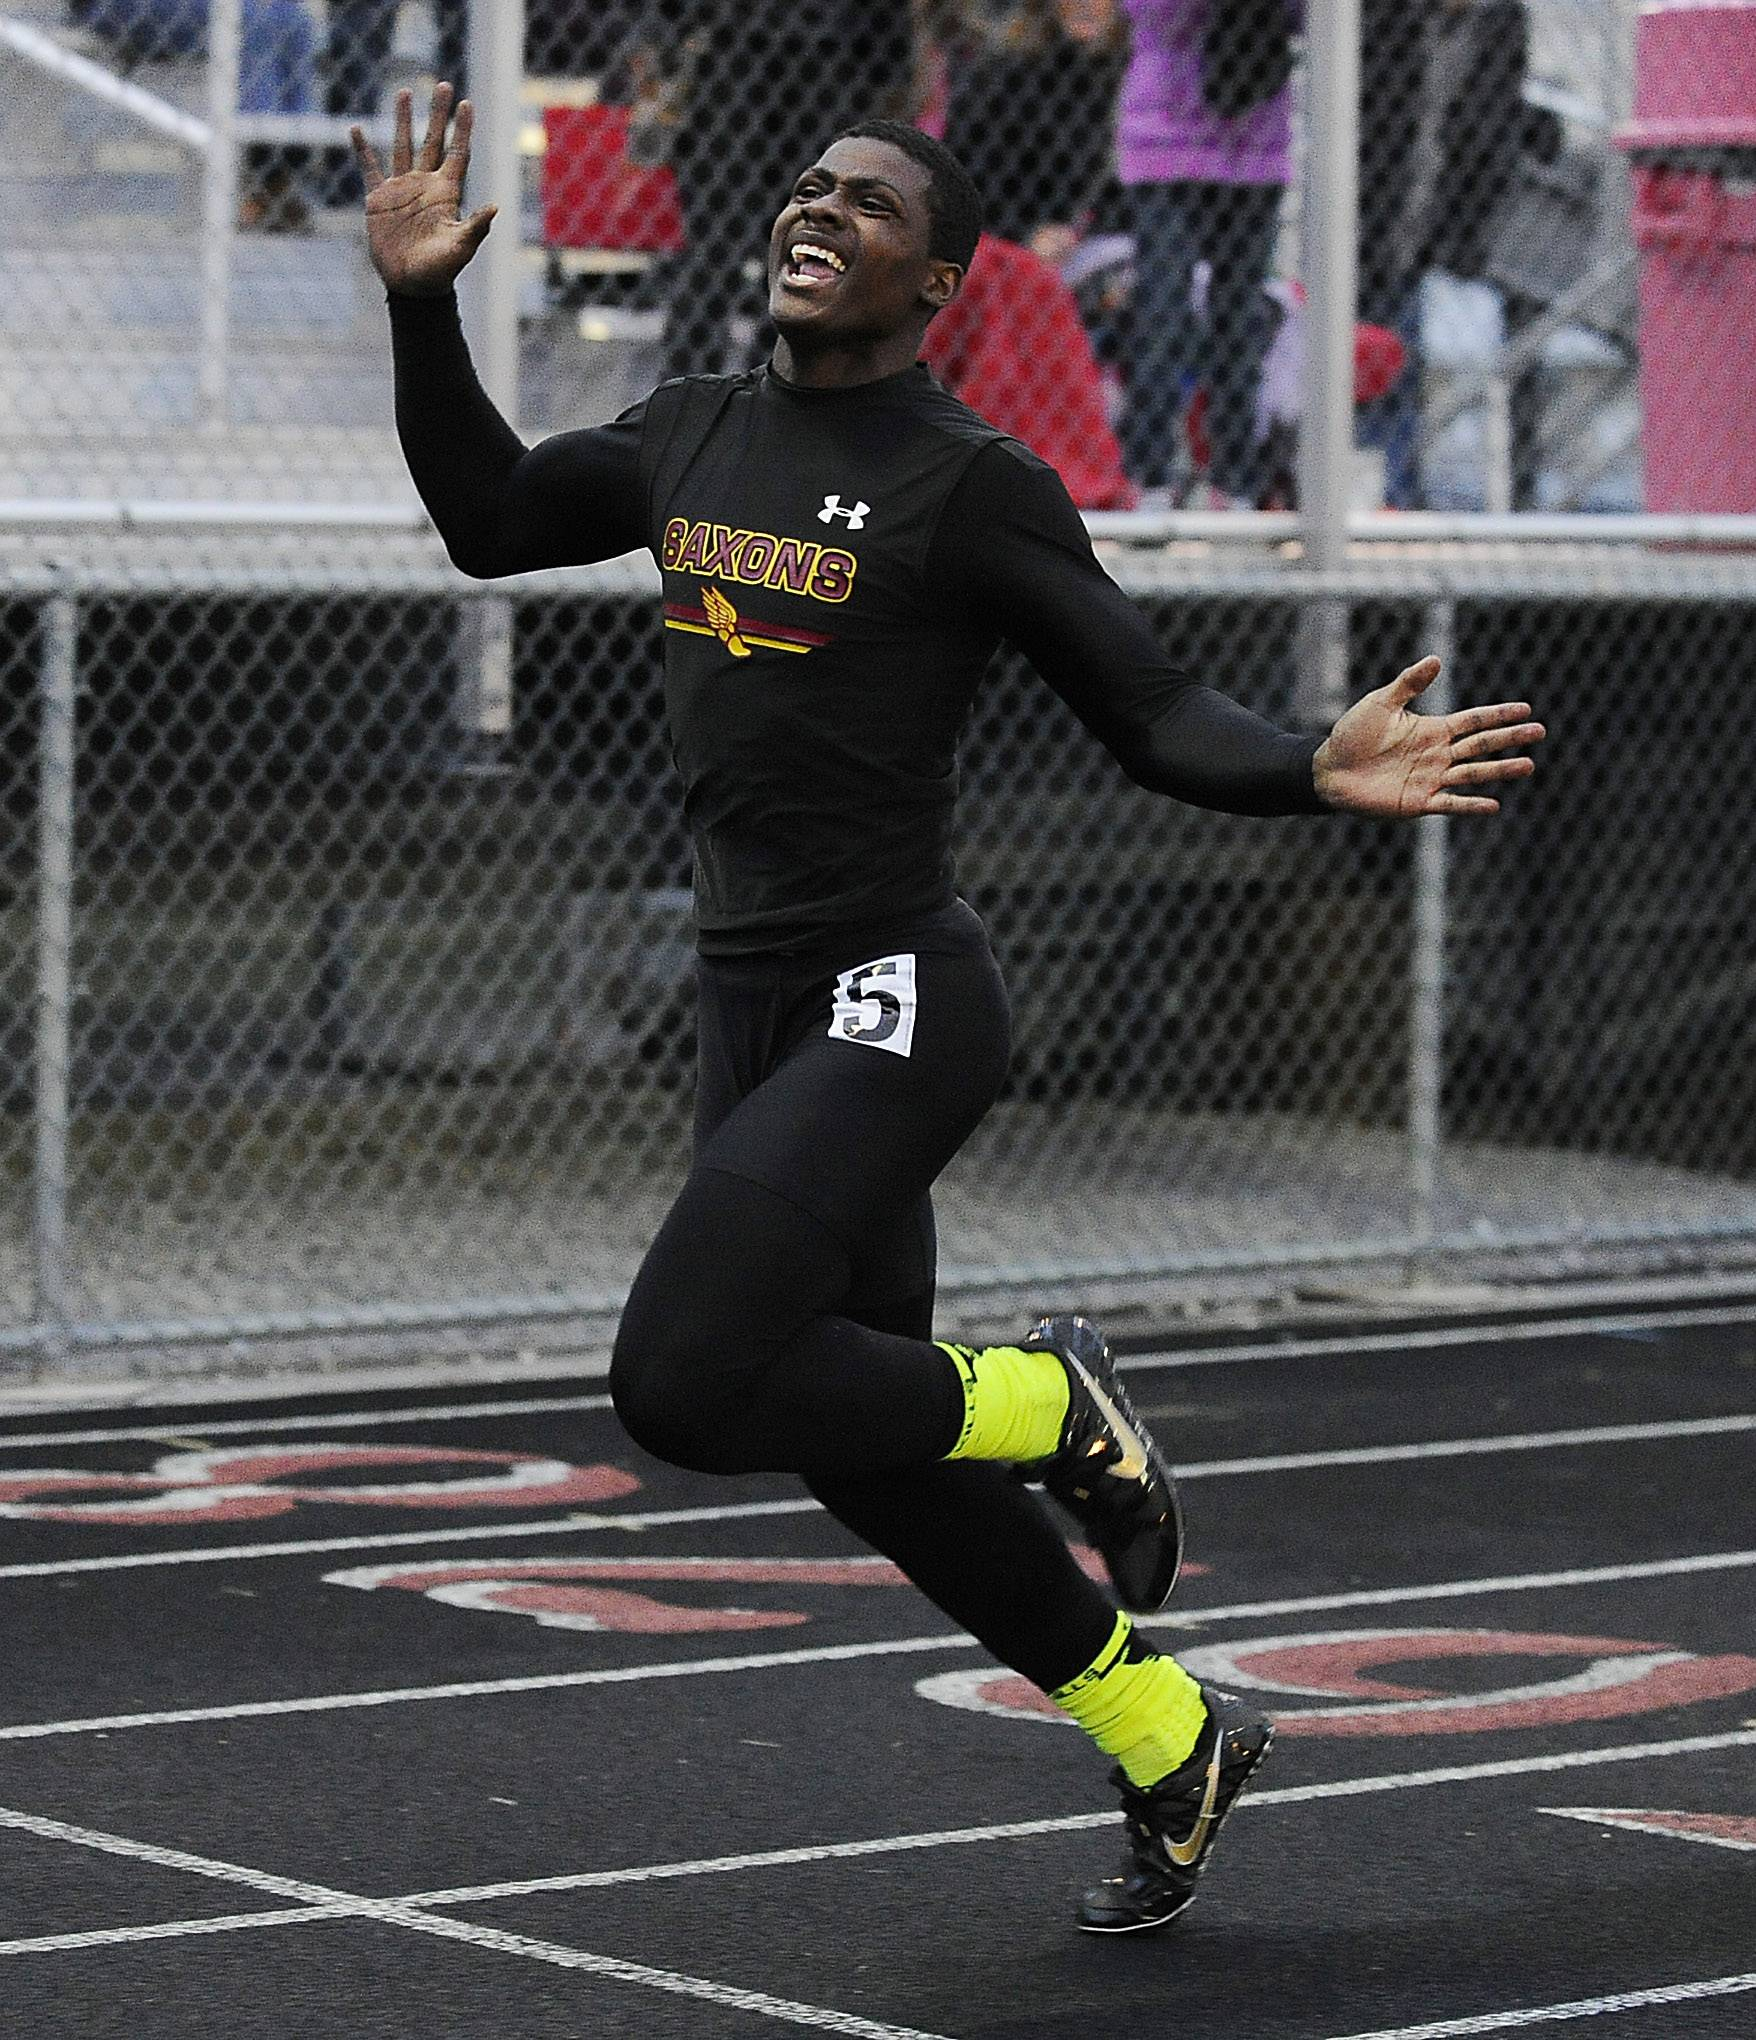 Schaumburg's Shandall Thomas takes the 100-meter dash during the Mid-Suburban League meet Friday at Palatine.